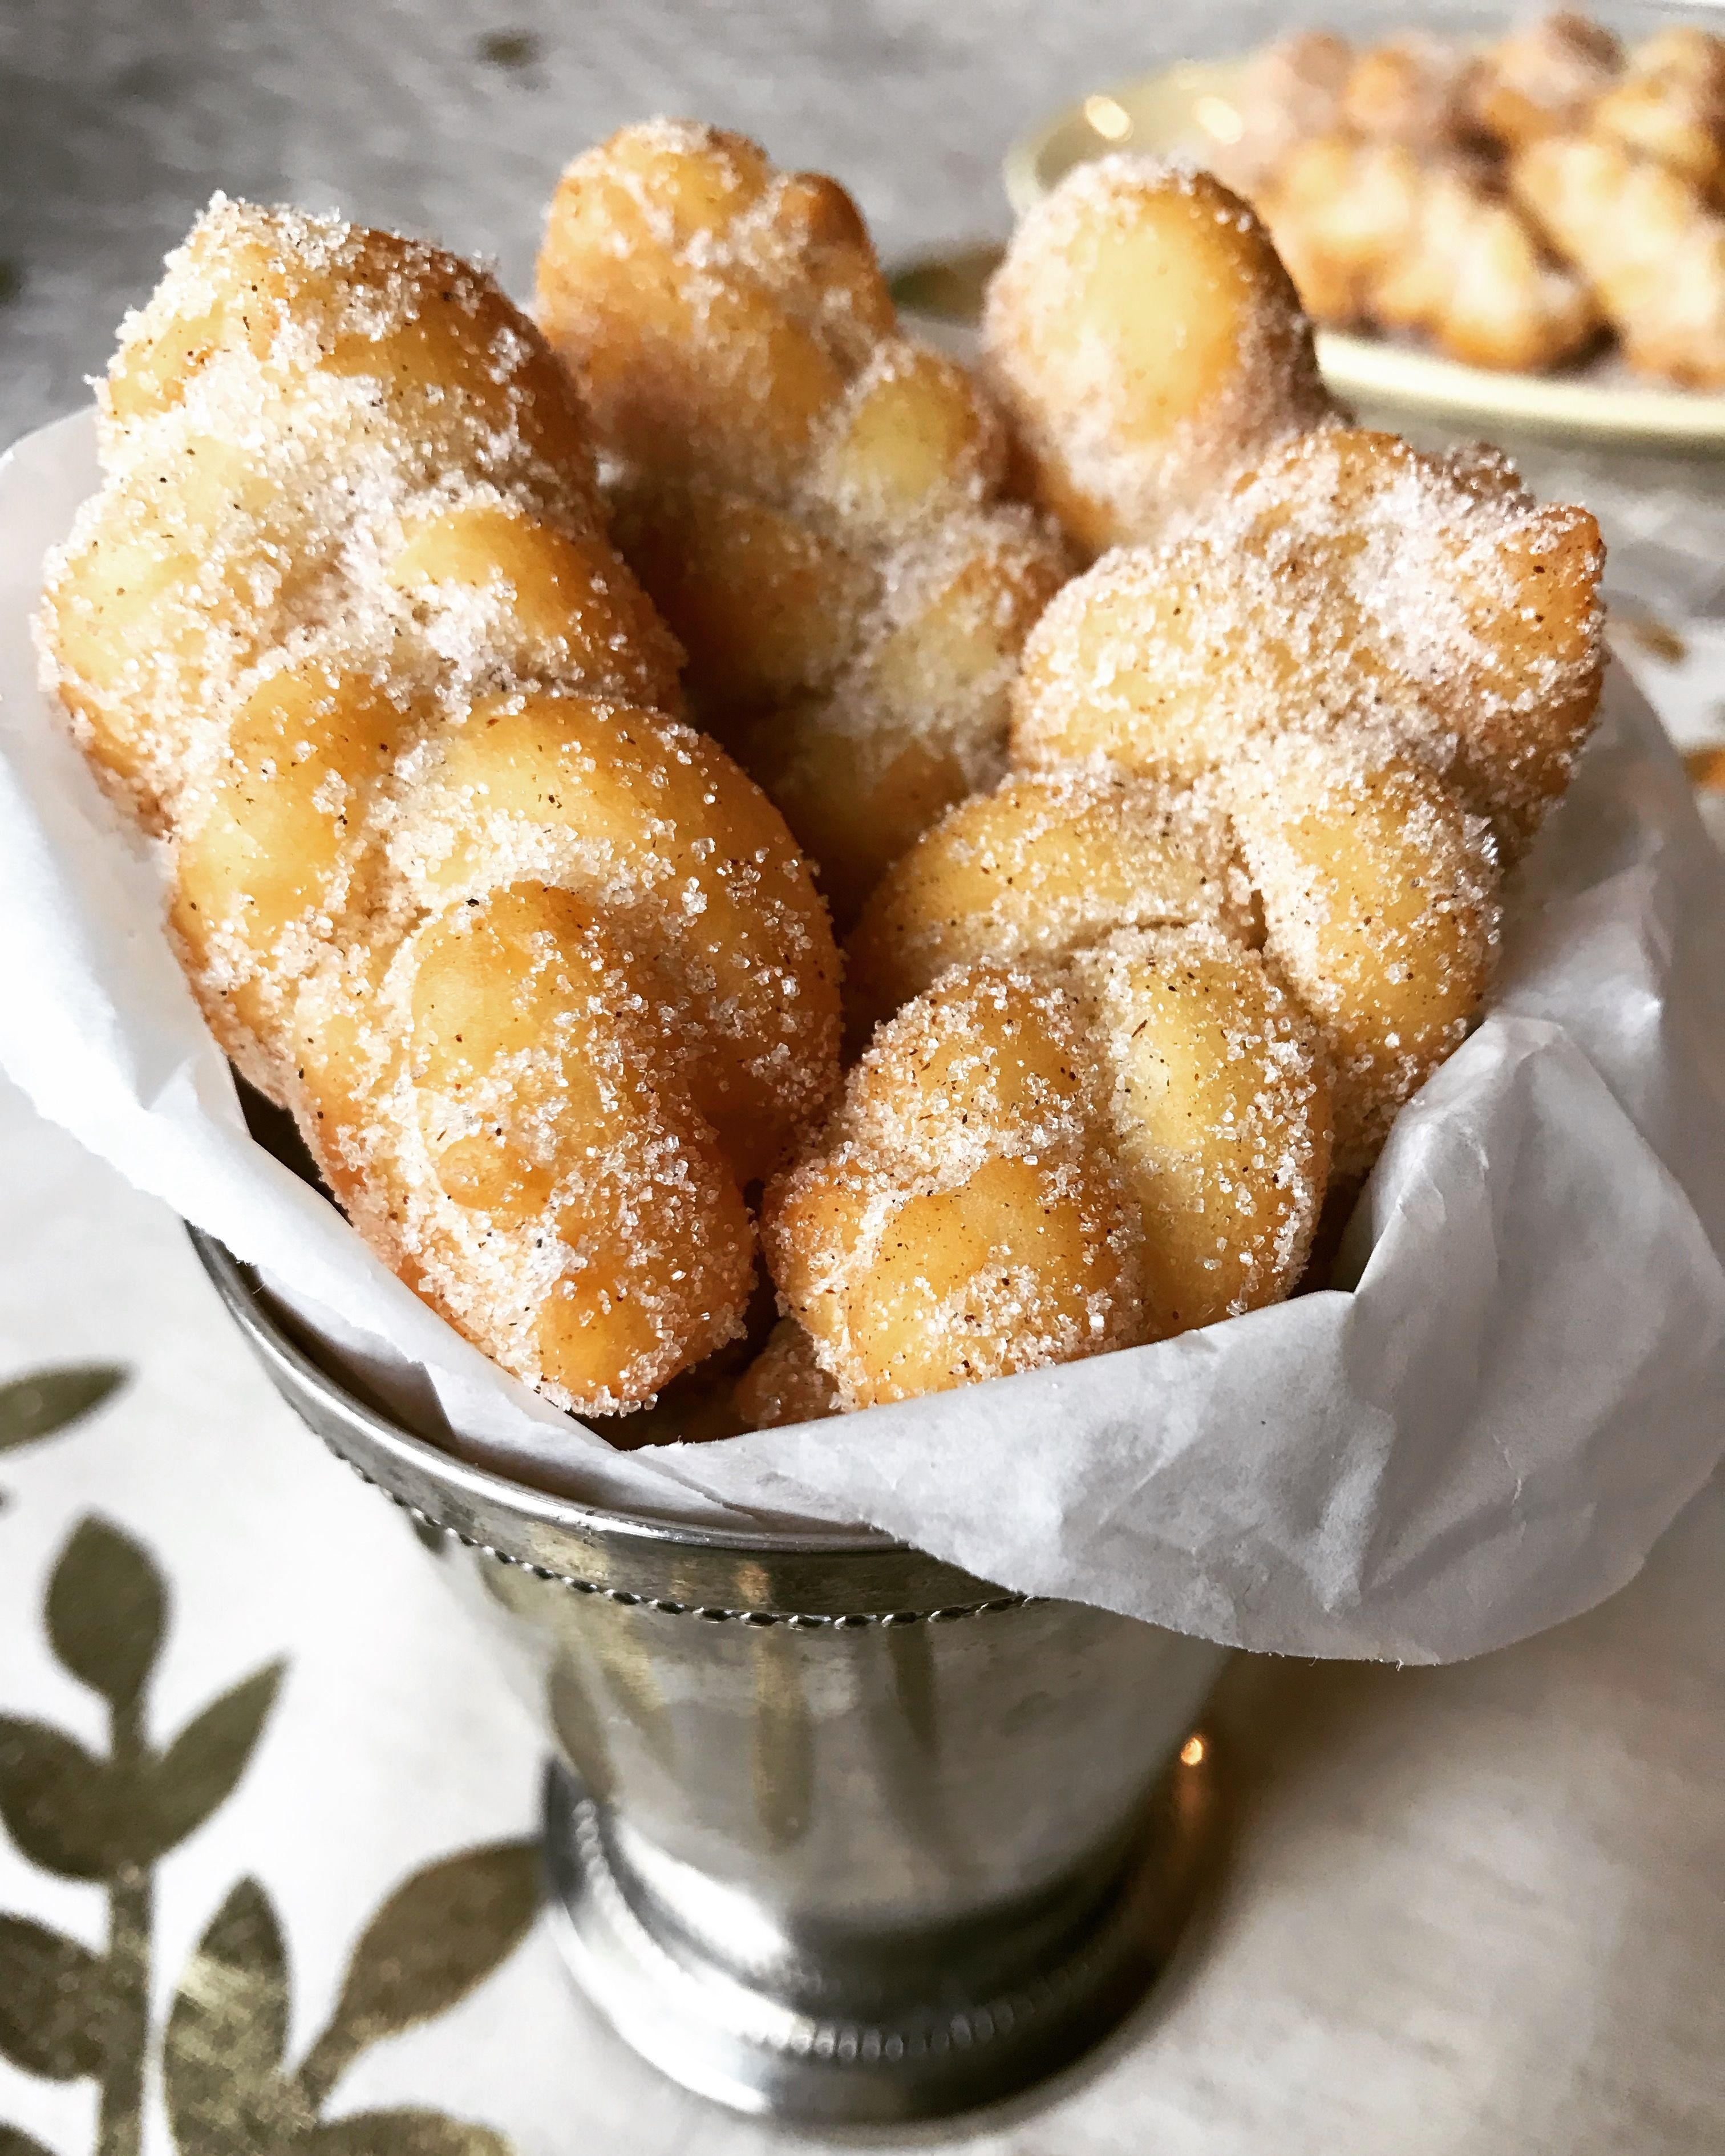 How To Make Koeksisters Fried South African Mini Doughnuts Recipe Koeksisters Koeksisters Recipe Mini Doughnuts